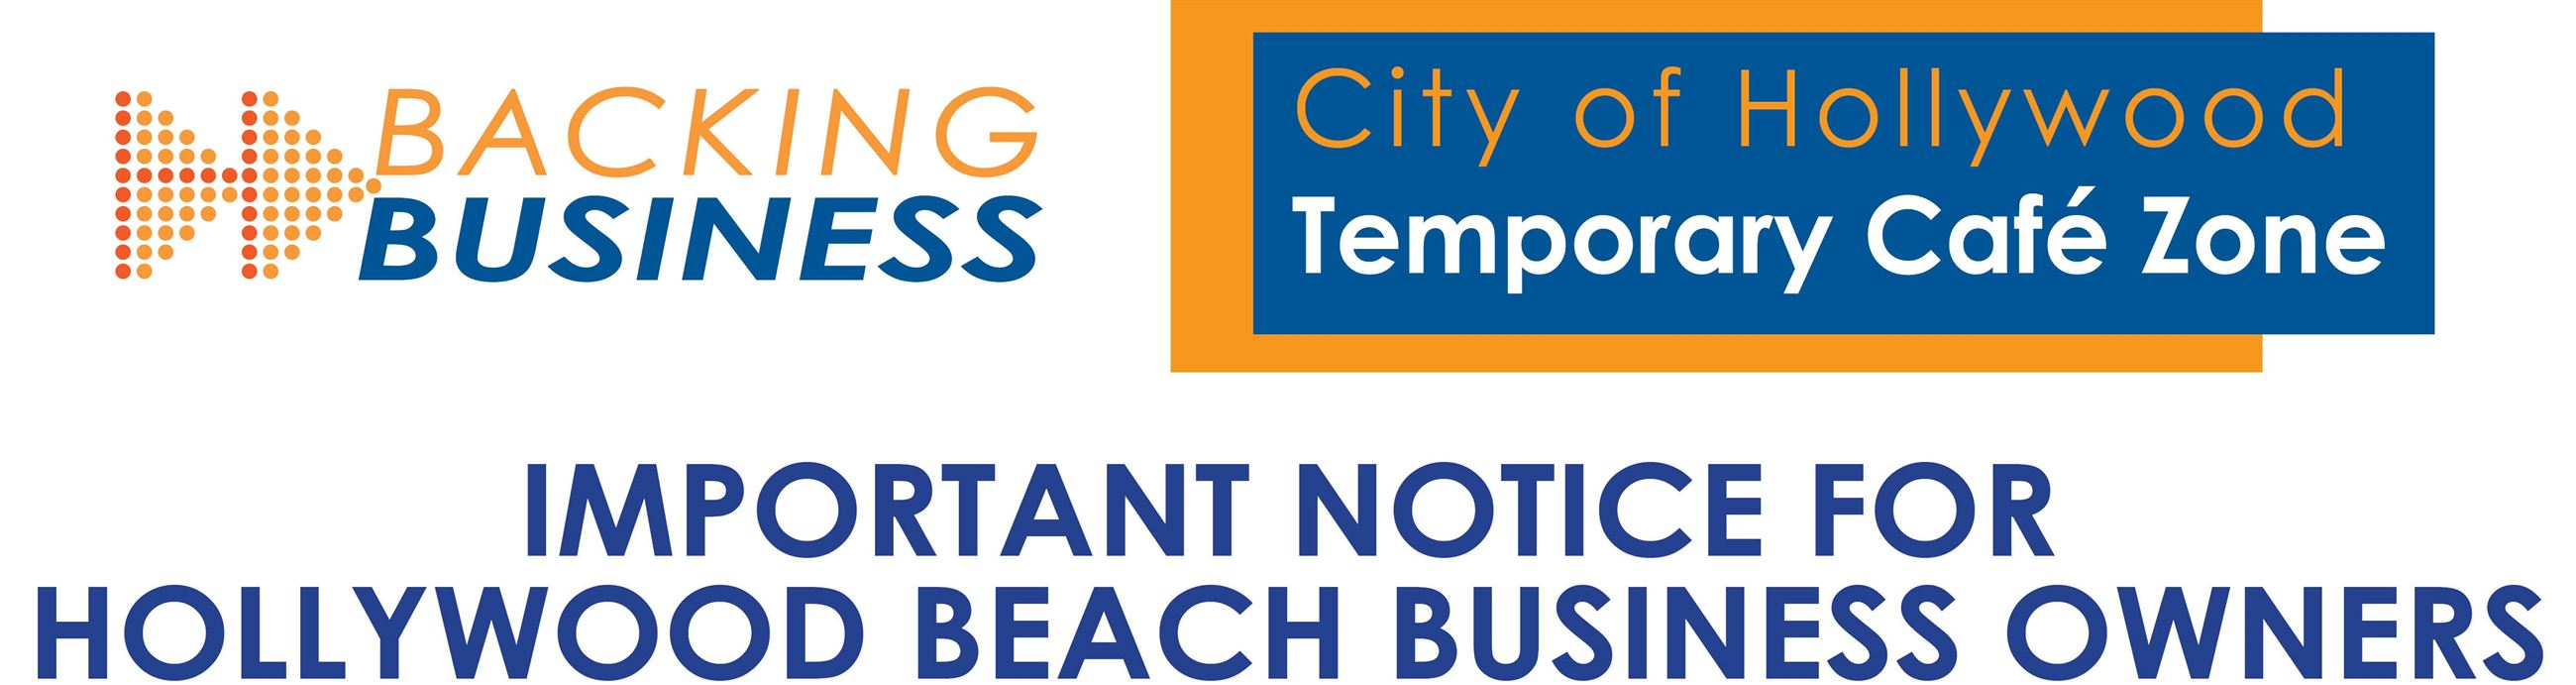 Important Notice to Hollywood Beach Business Owners